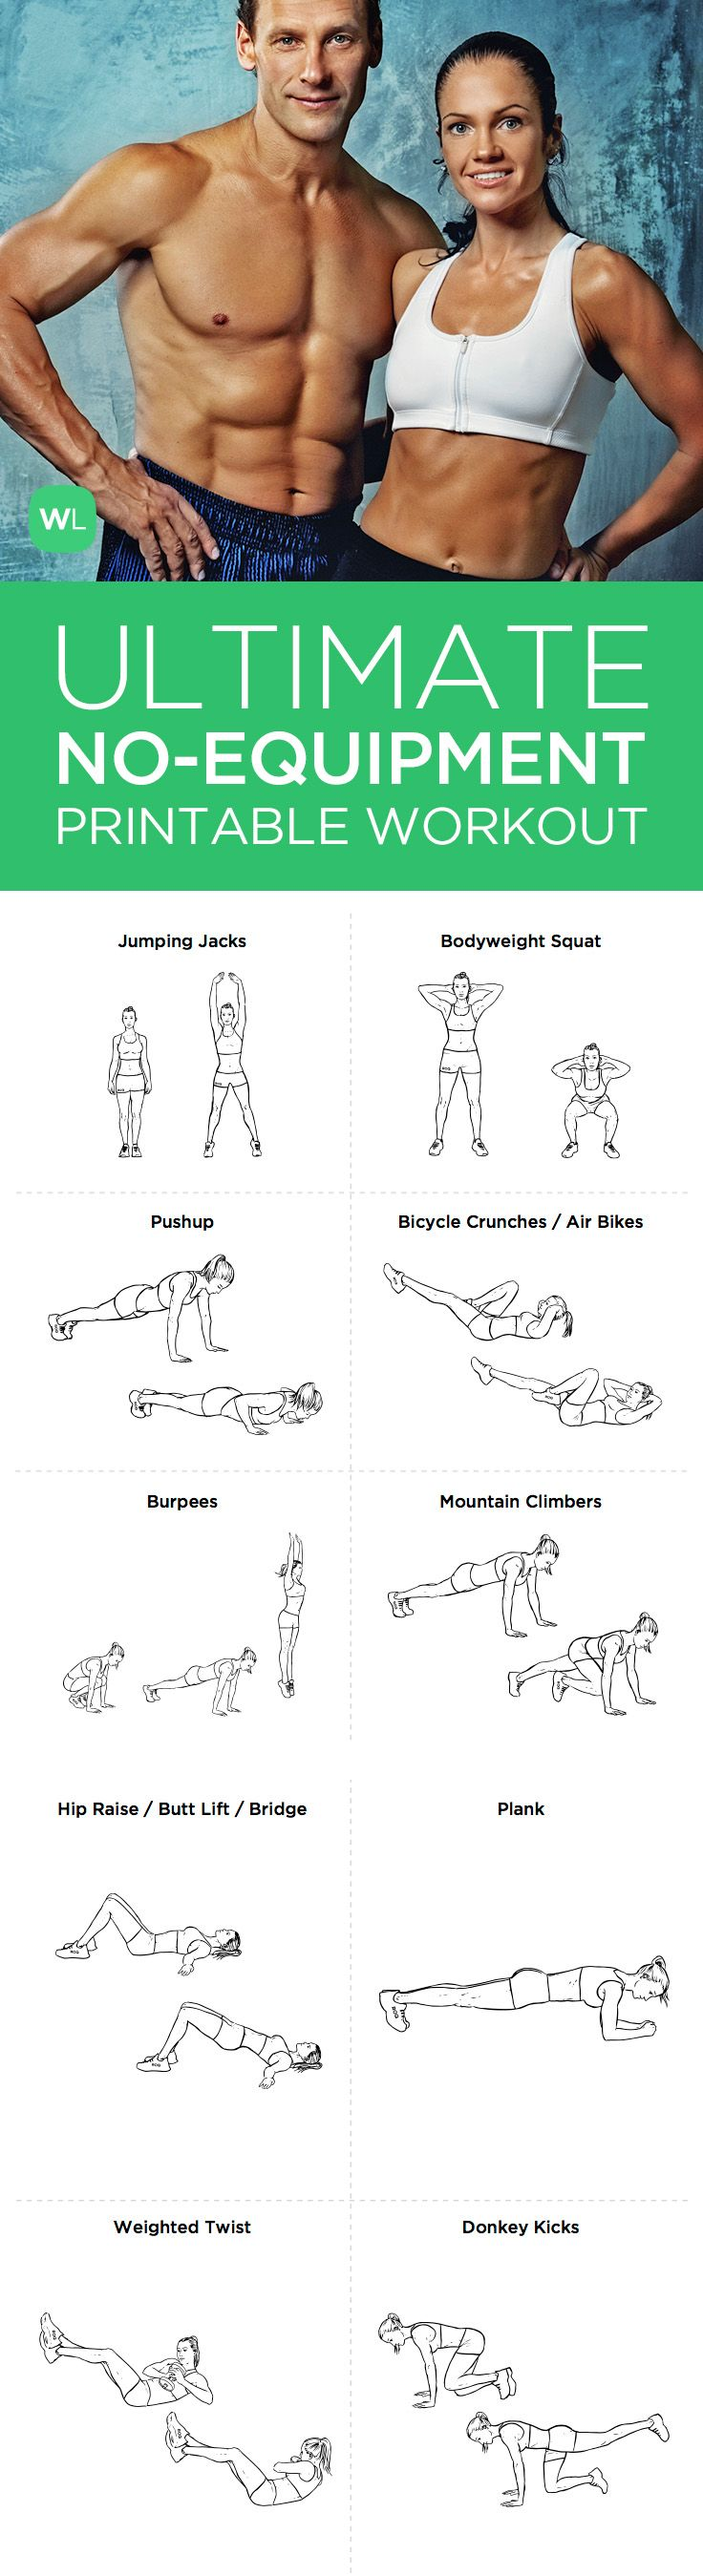 Need a good full-body home-based workout that doesn't require gym equipment?